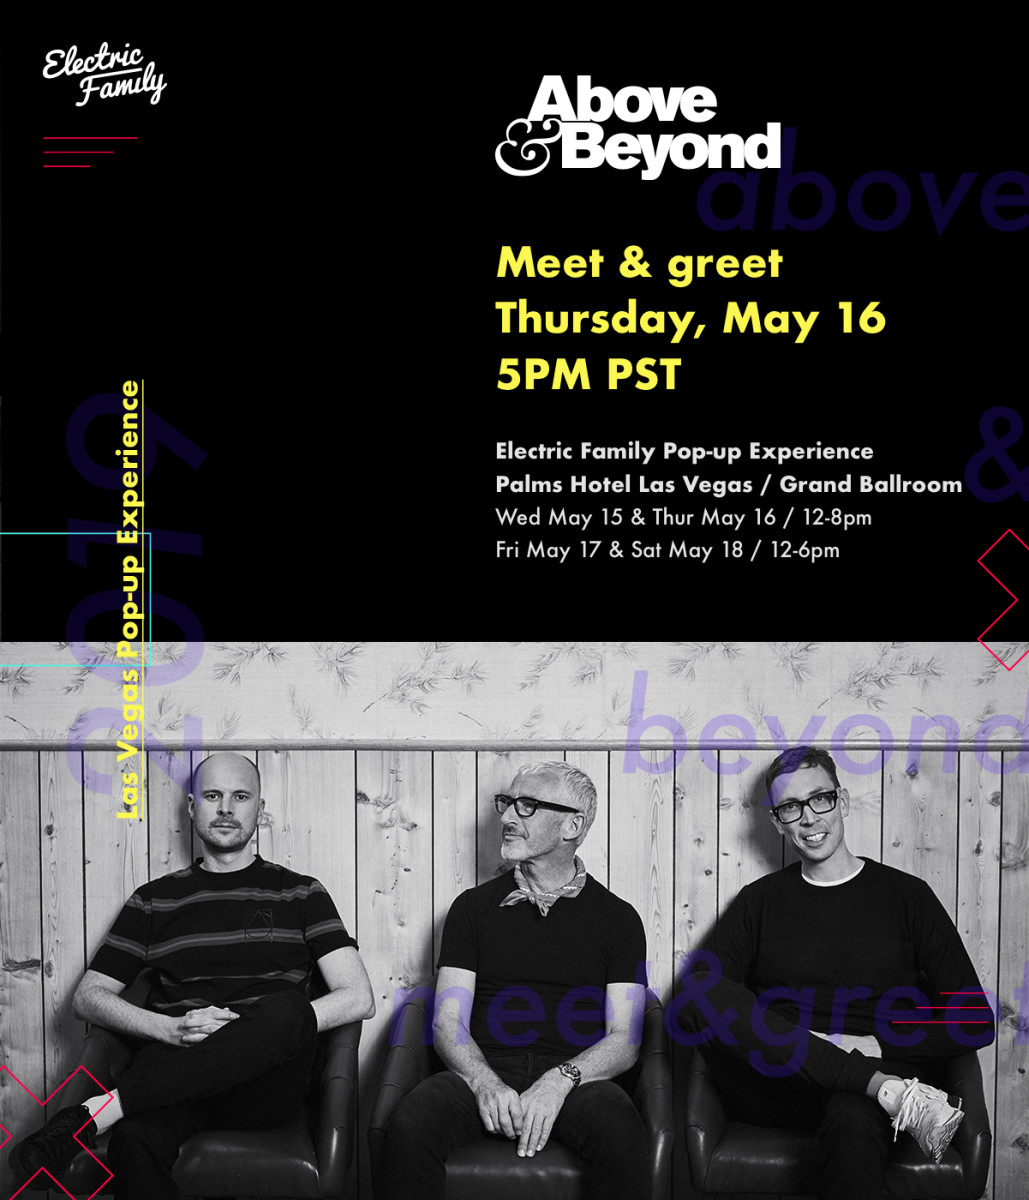 Electric Family / Above & Beyond Meet & Greet (Las Vegas Pop-Up Experience)